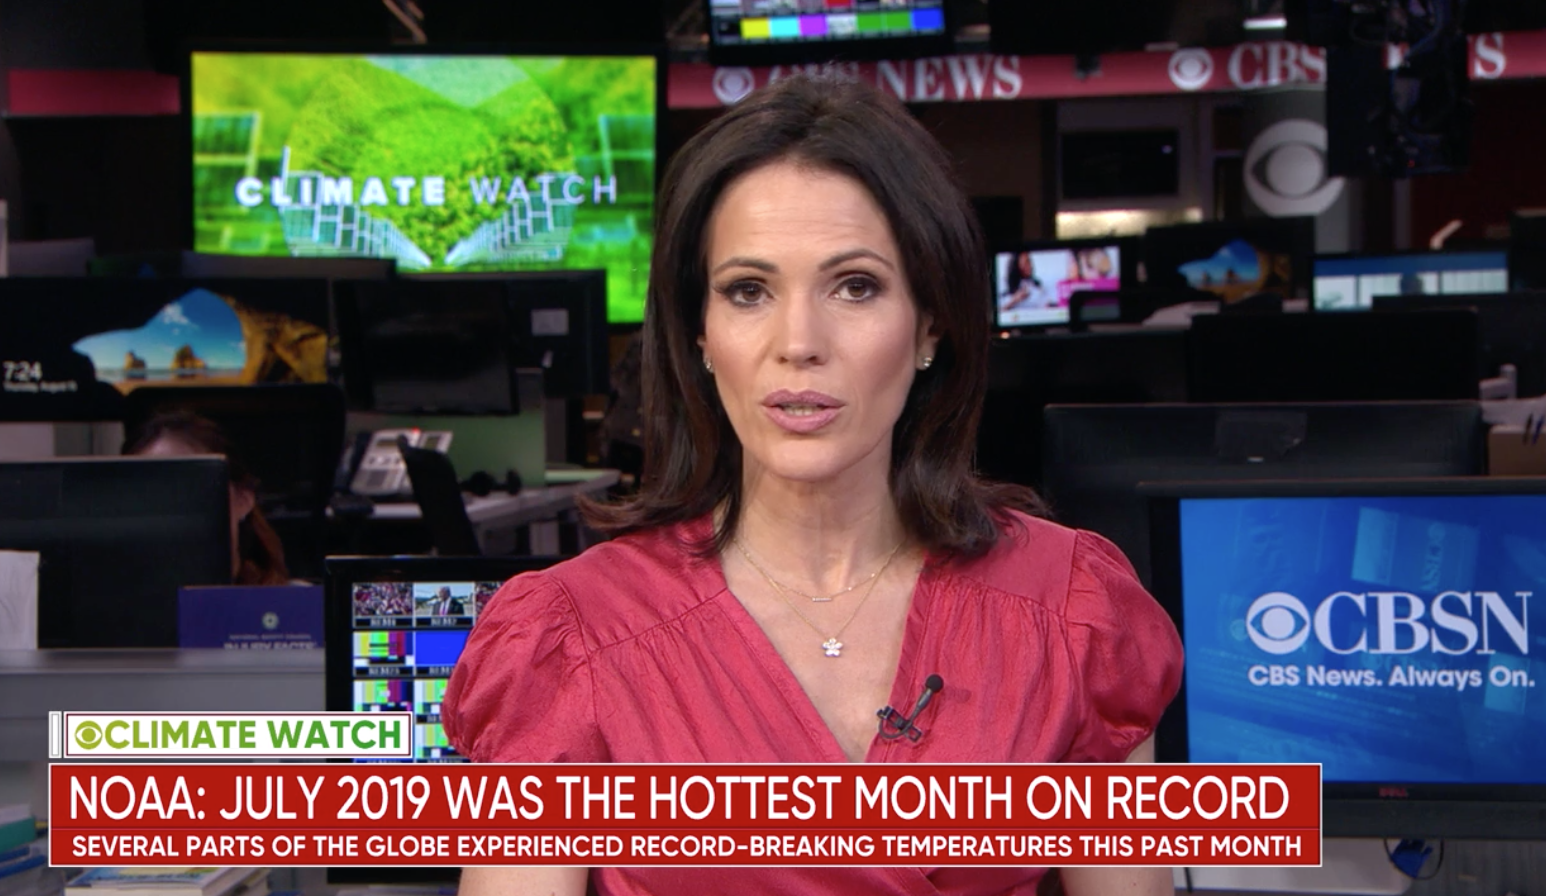 Hot or Not? Media Omit Critics of 'Hottest' July Claims, Hype Climate